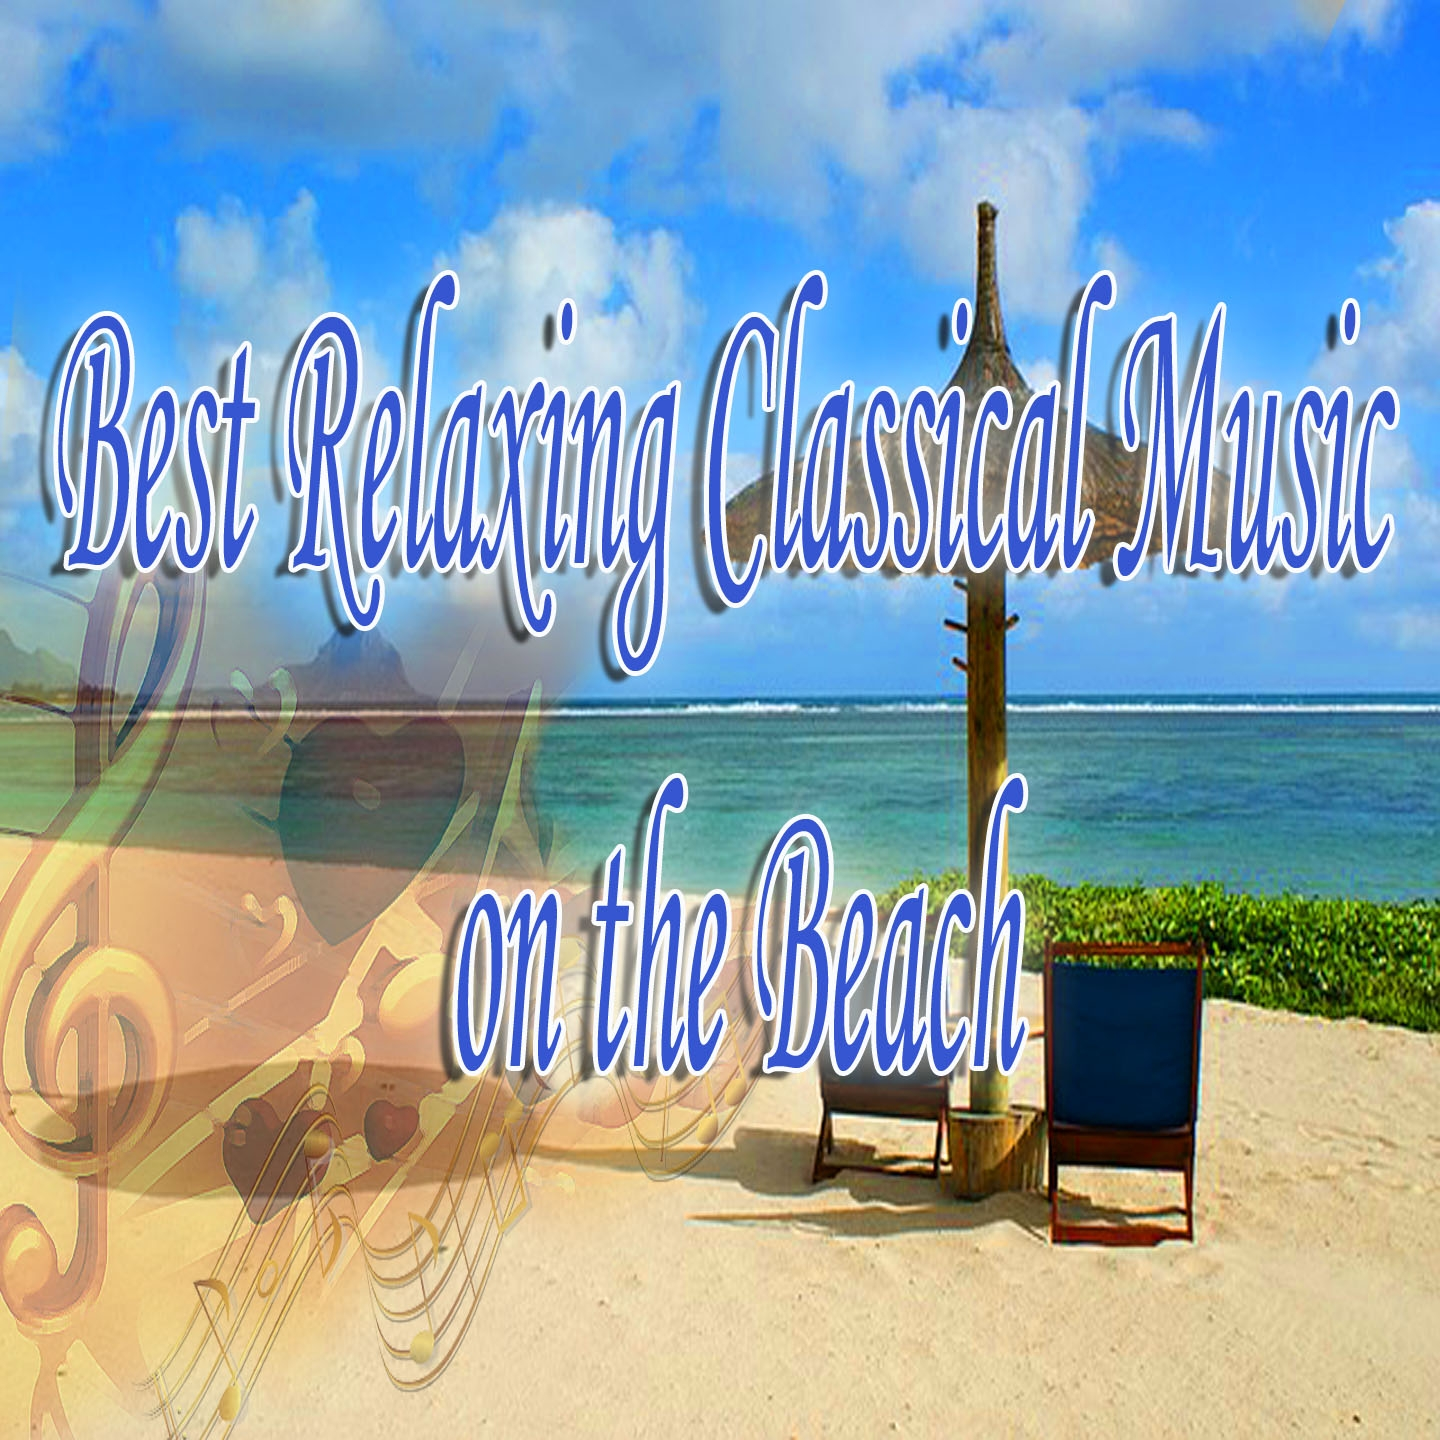 The Best Relaxing Classical Music on the Beach